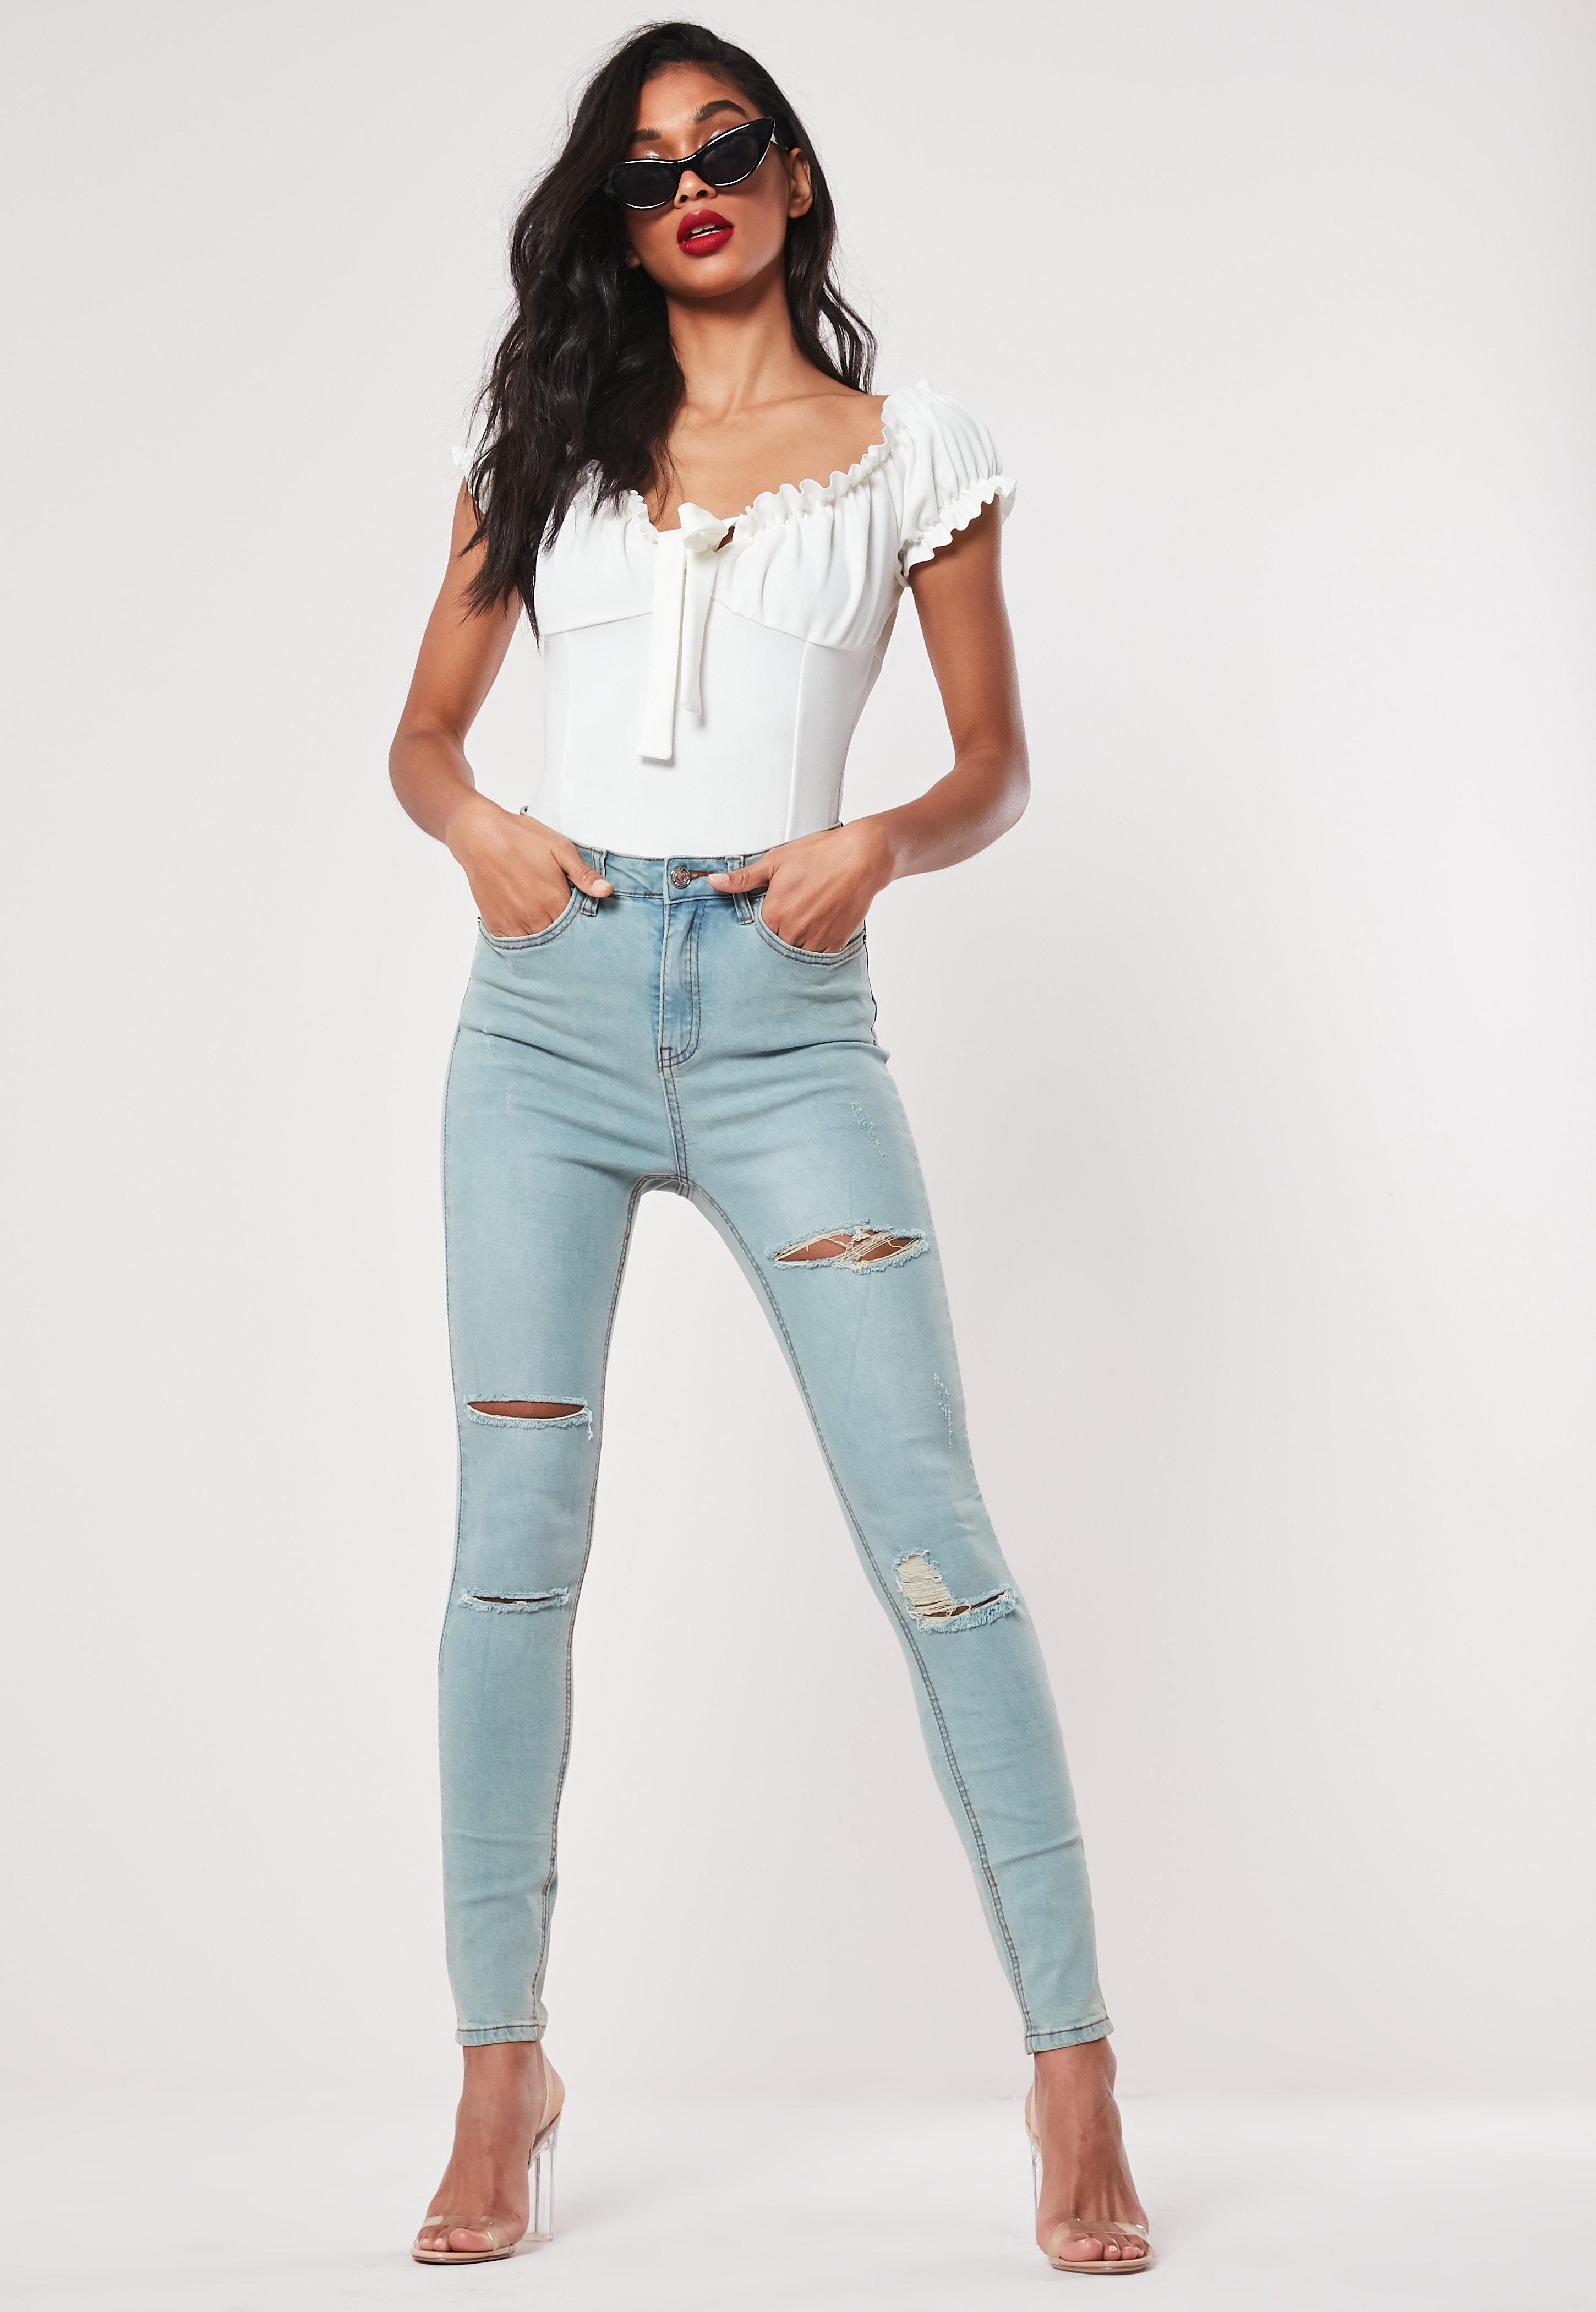 1ead59c1bdee7a Ripped Jeans | Distressed Jeans - Missguided